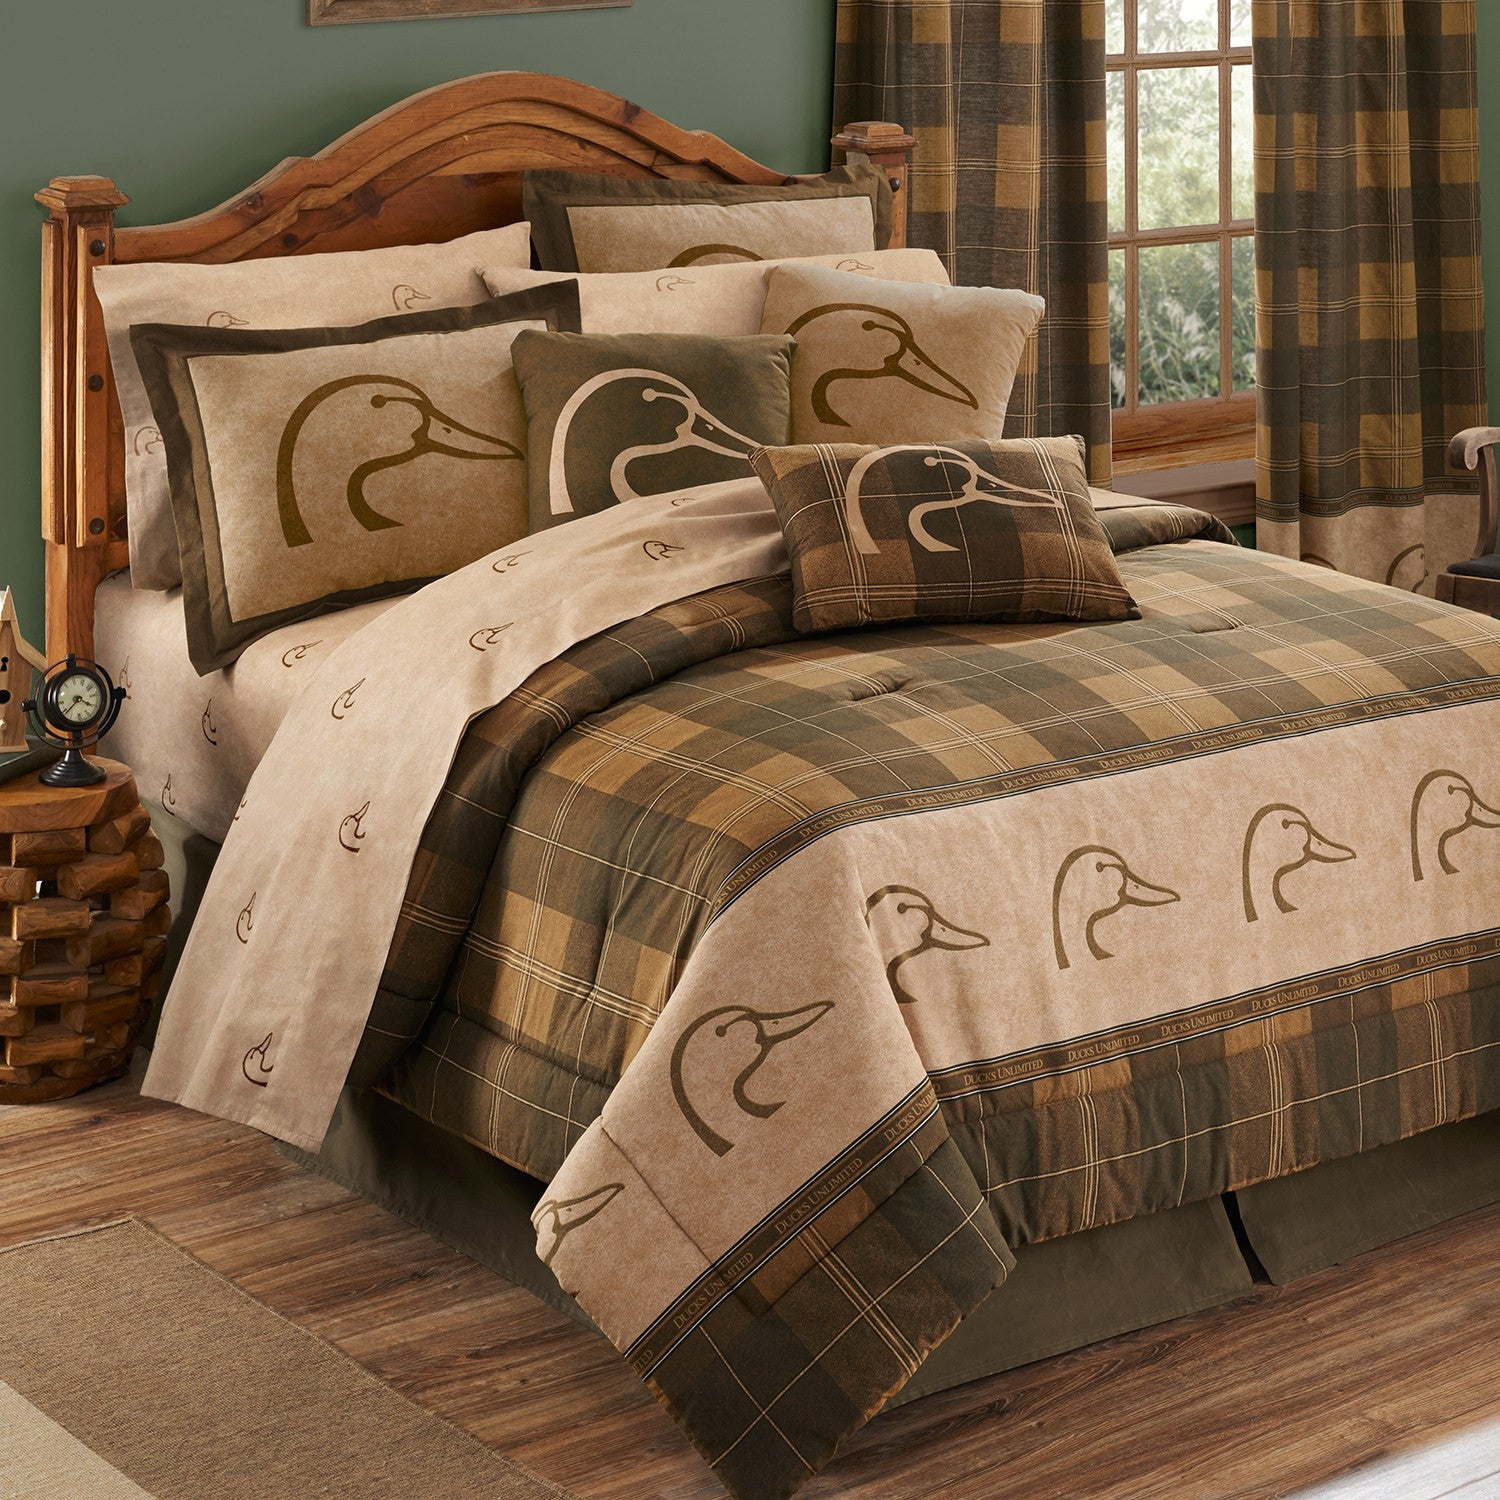 Ducks Unlimited Comforter Sham Bedding Set Plaid Full